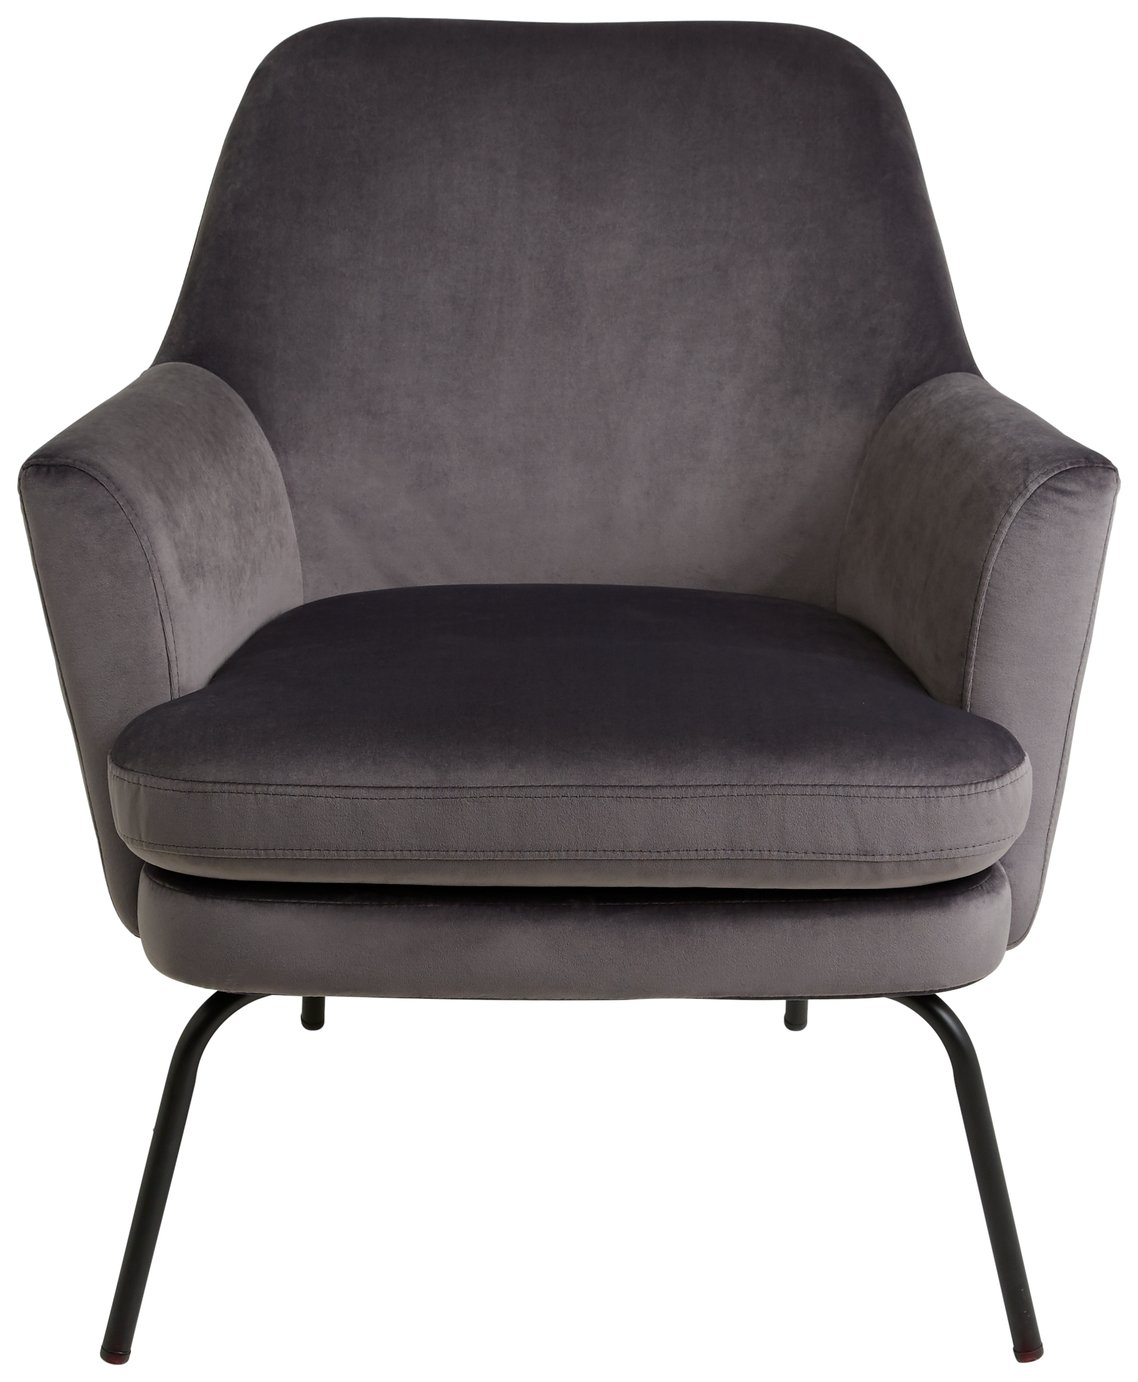 Habitat Celine Velvet Accent Chair - Grey